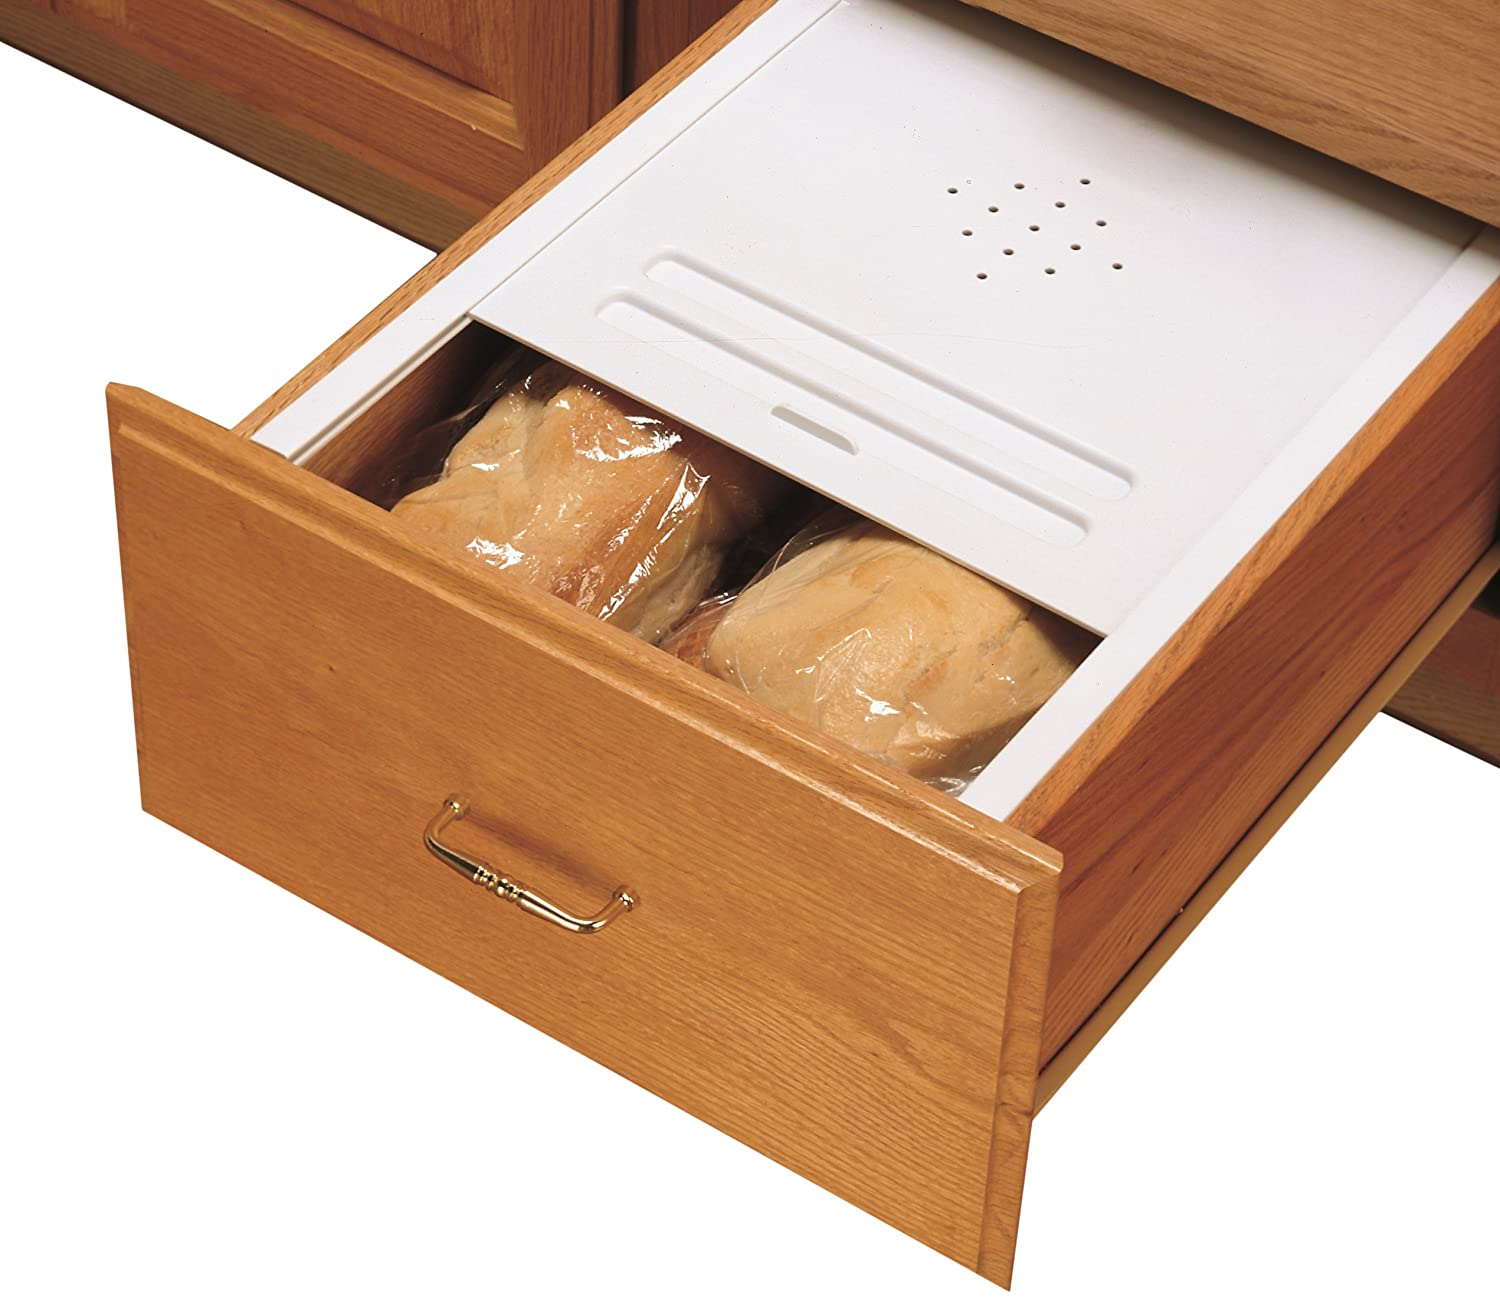 Tin bread box drawer insert - Amazon Com Rev A Shelf Small Bread Drawer Cover Kit Organizers White